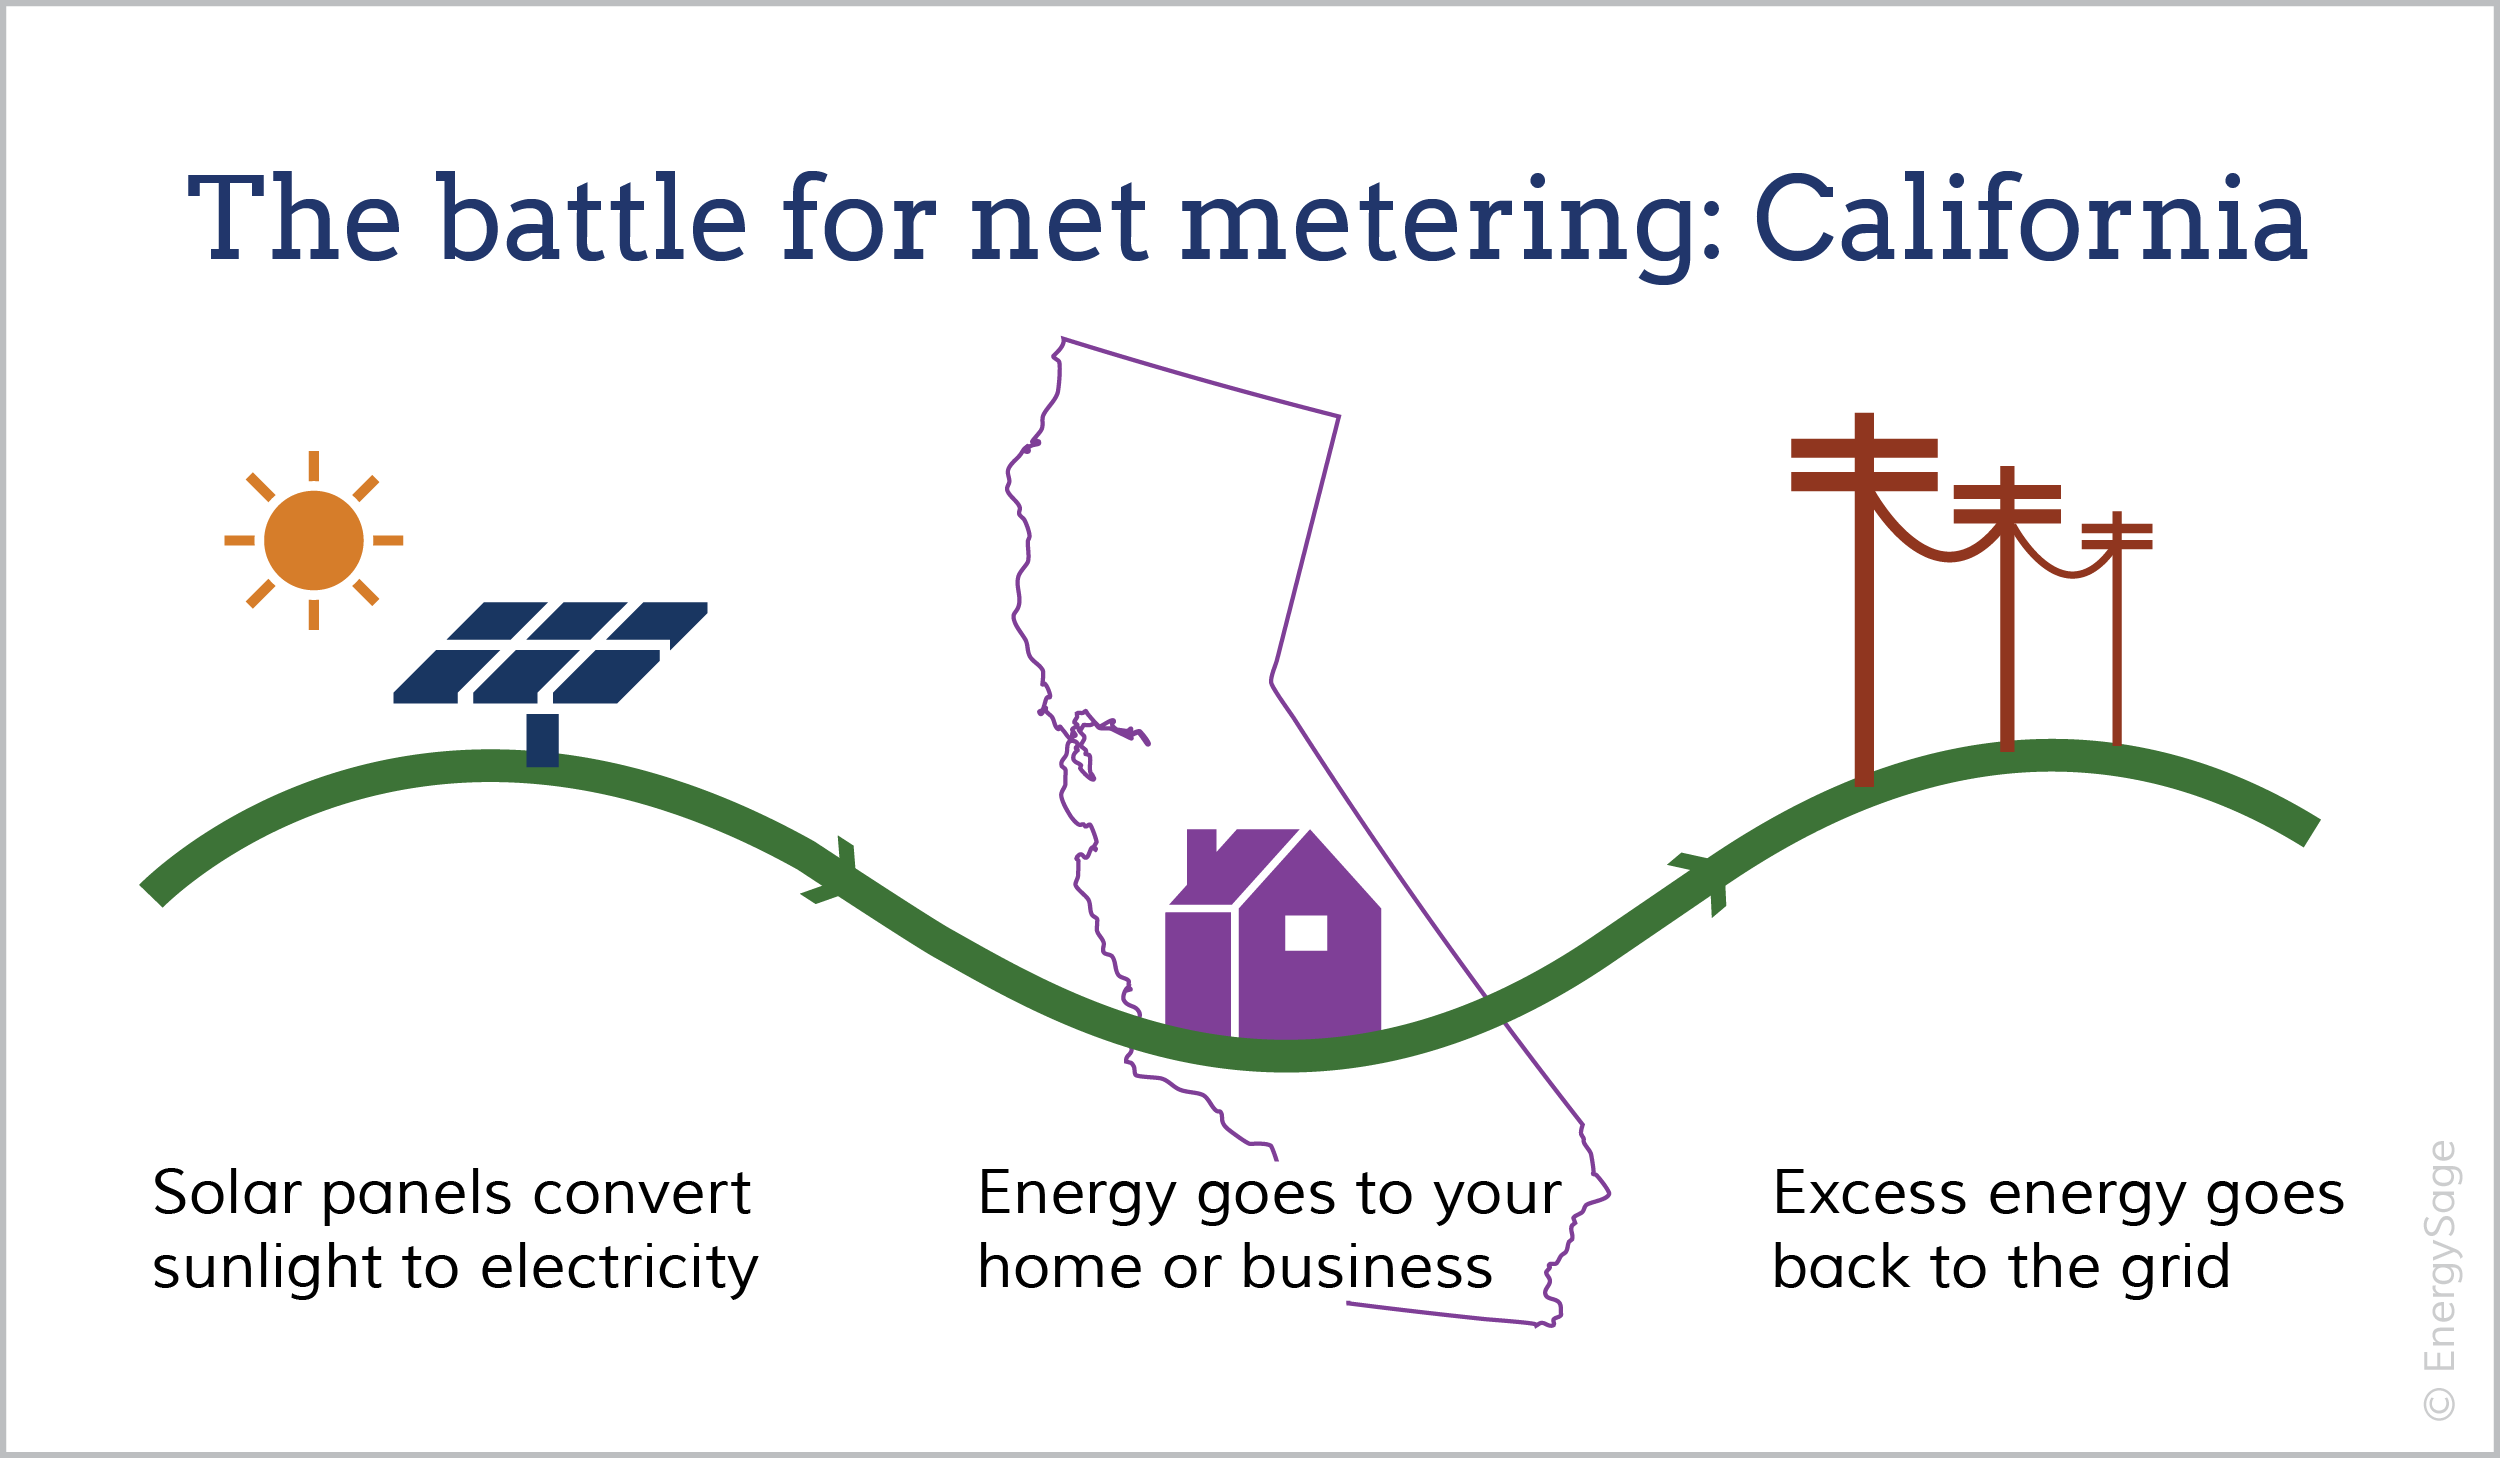 Net metering in California